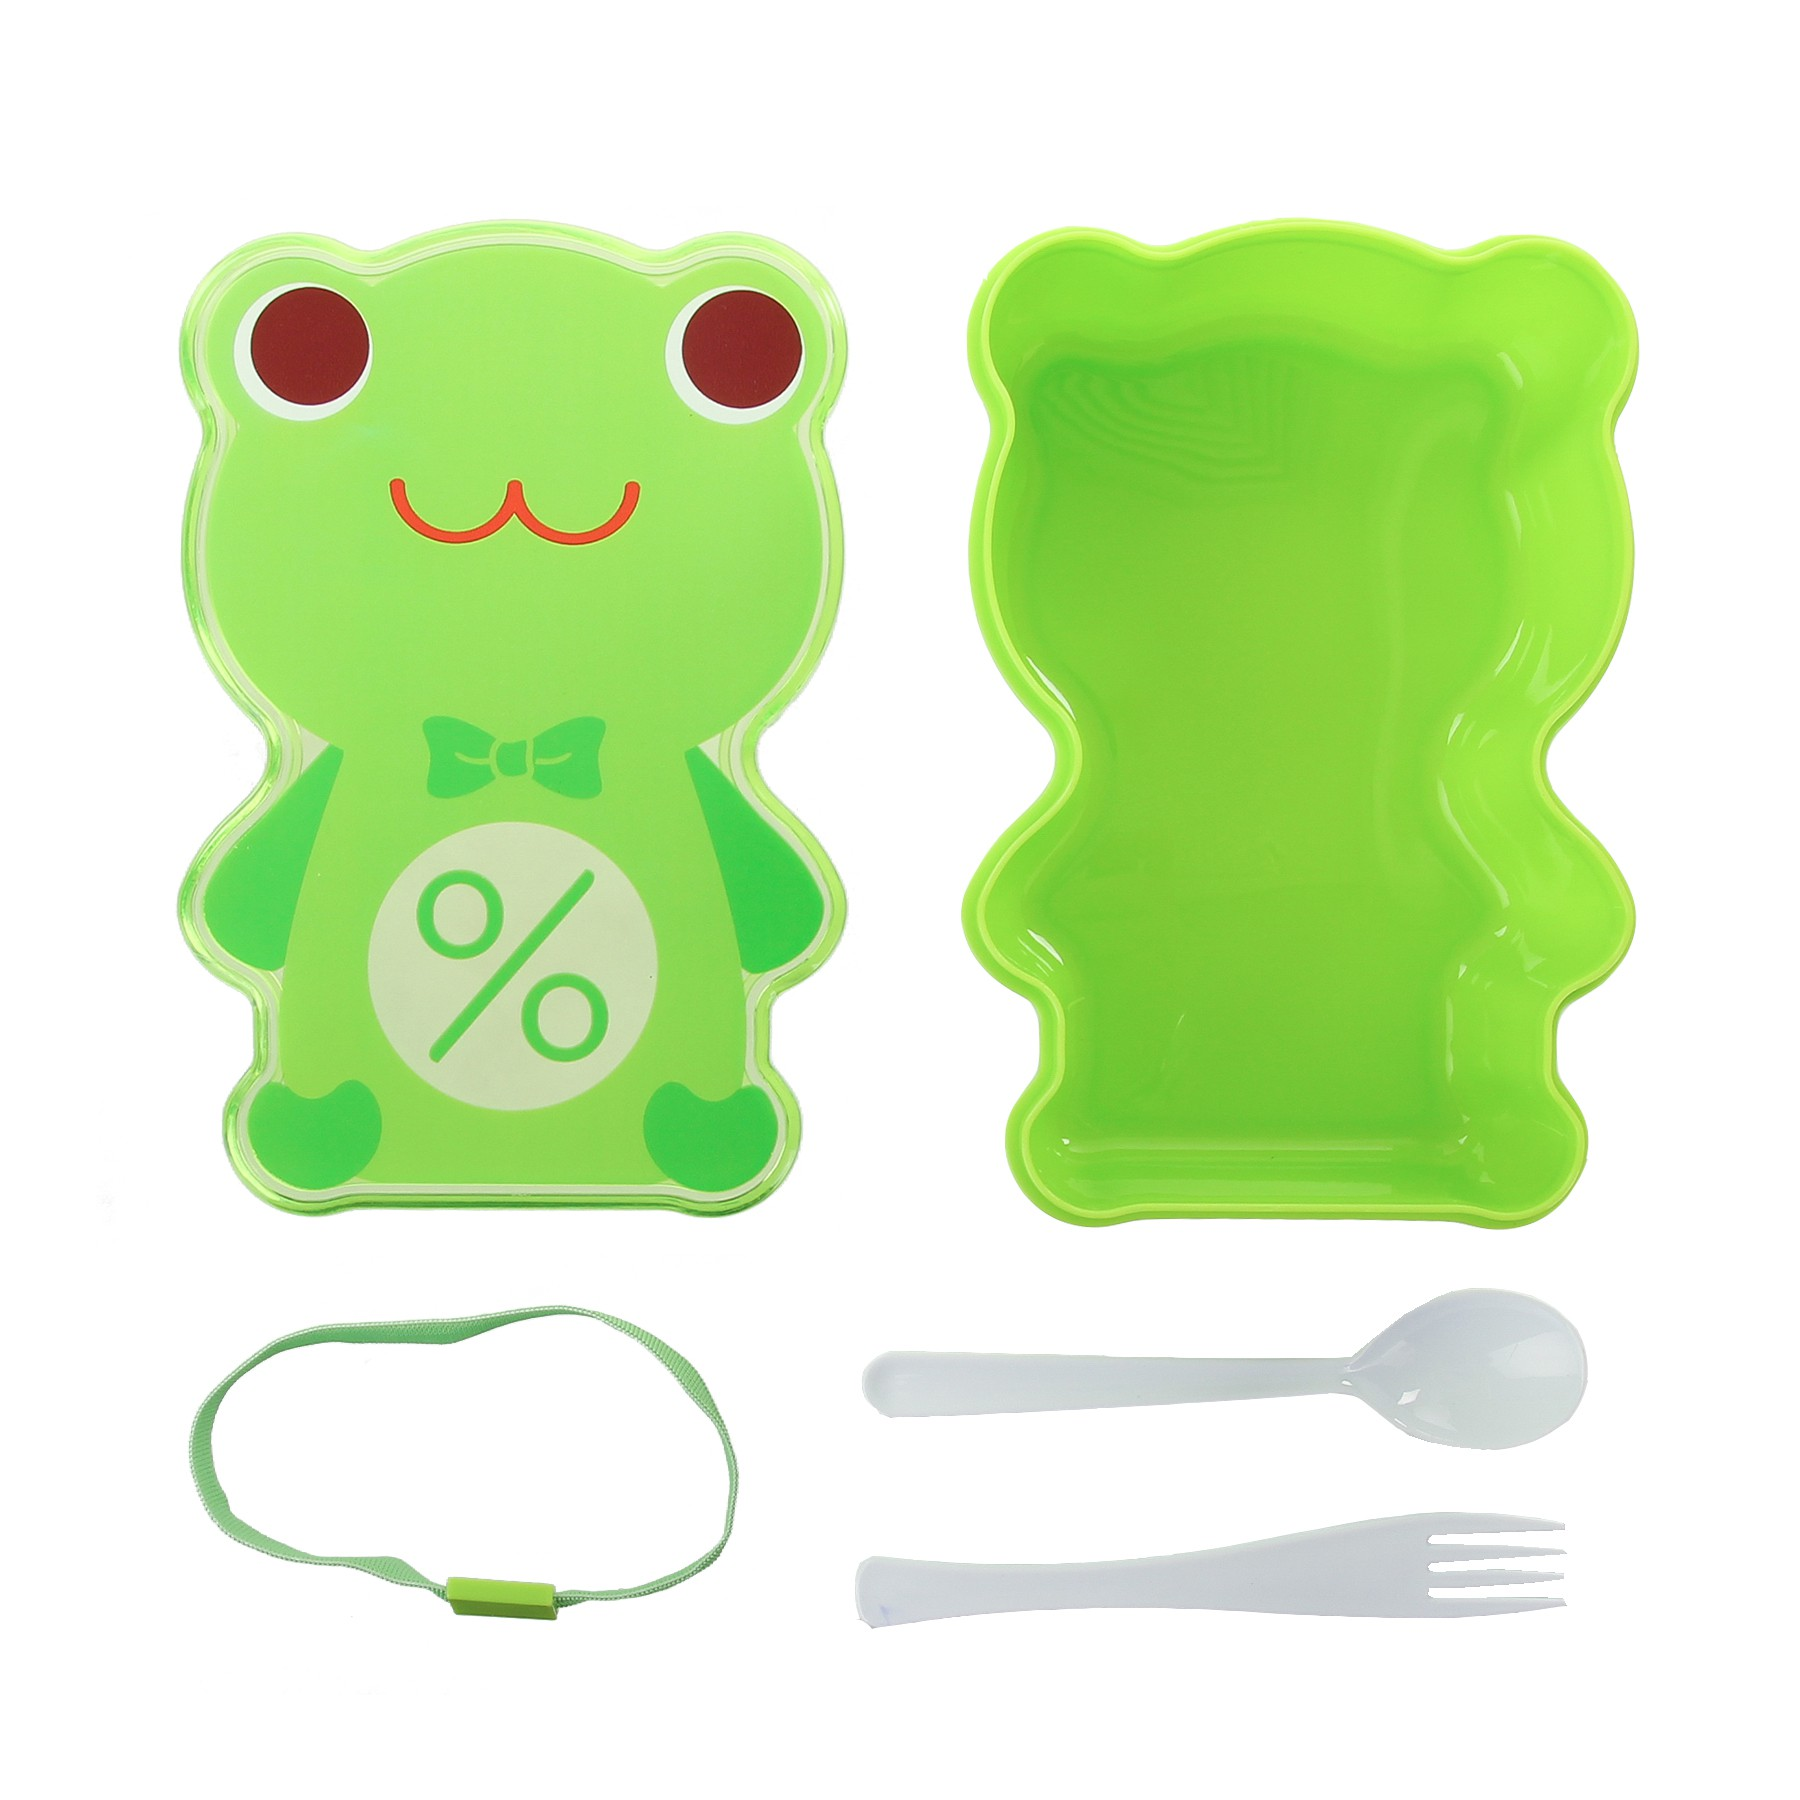 Lunchbox mit Besteck, 580 ml Bild https://cdn03.plentymarkets.com/zsy4vjx32p87/item/images/5033/full/13053-ama-05.JPG